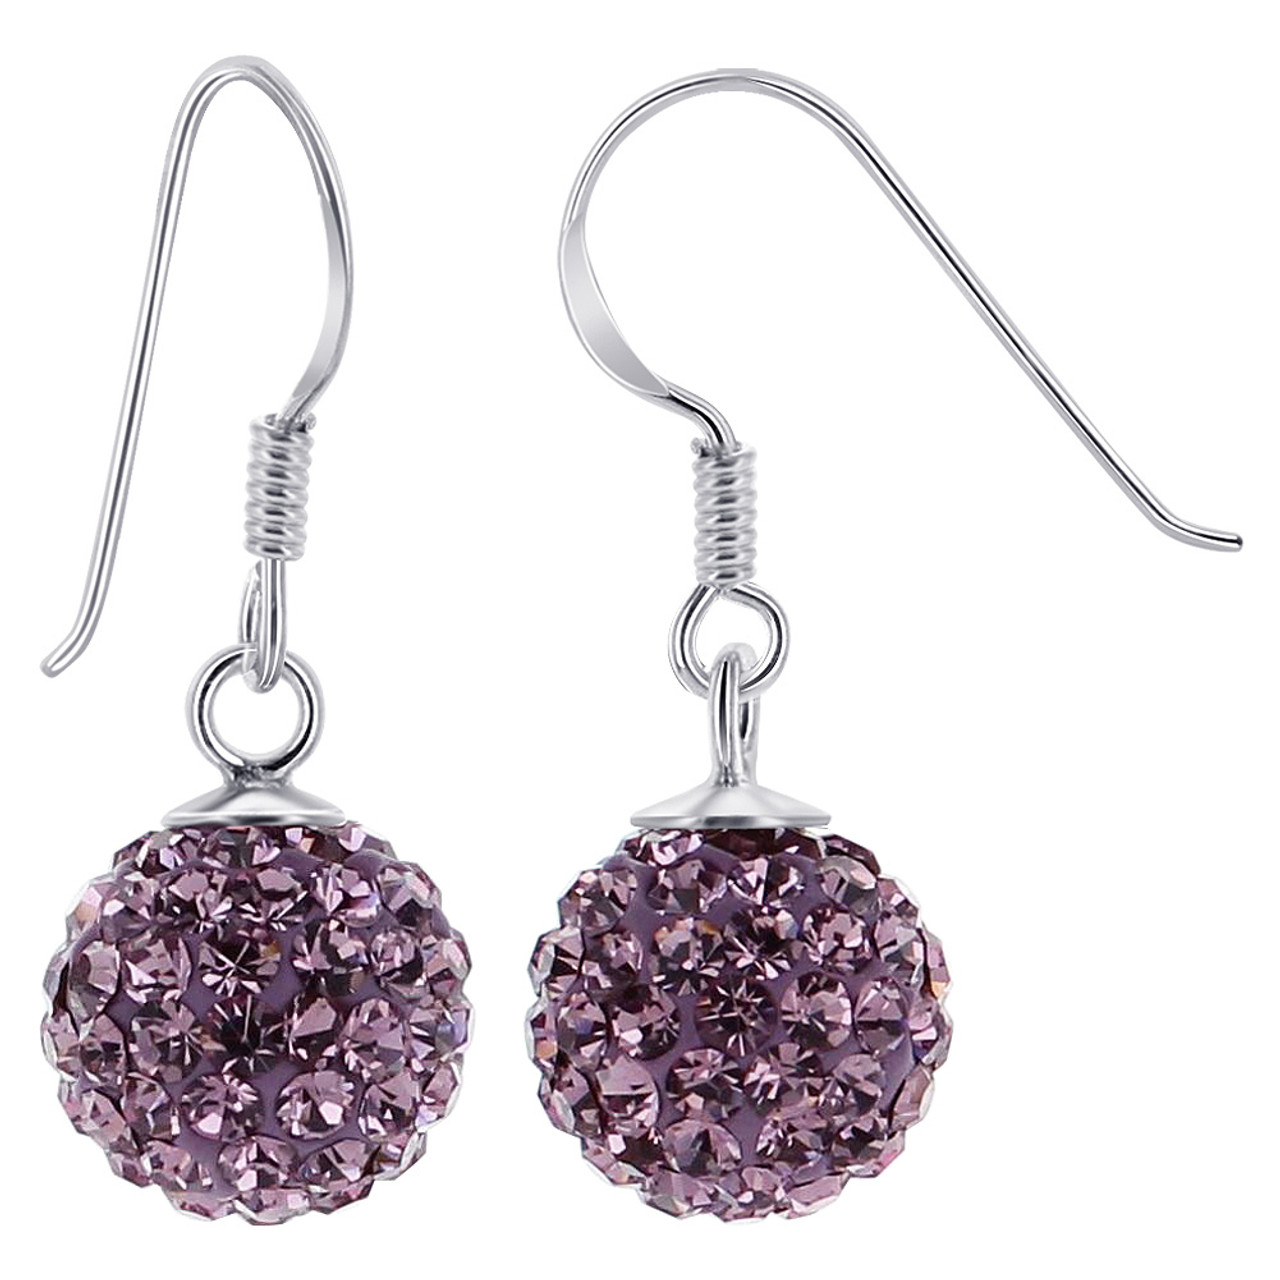 Studded Lavender Crystal Sterling Silver Drop Earrings